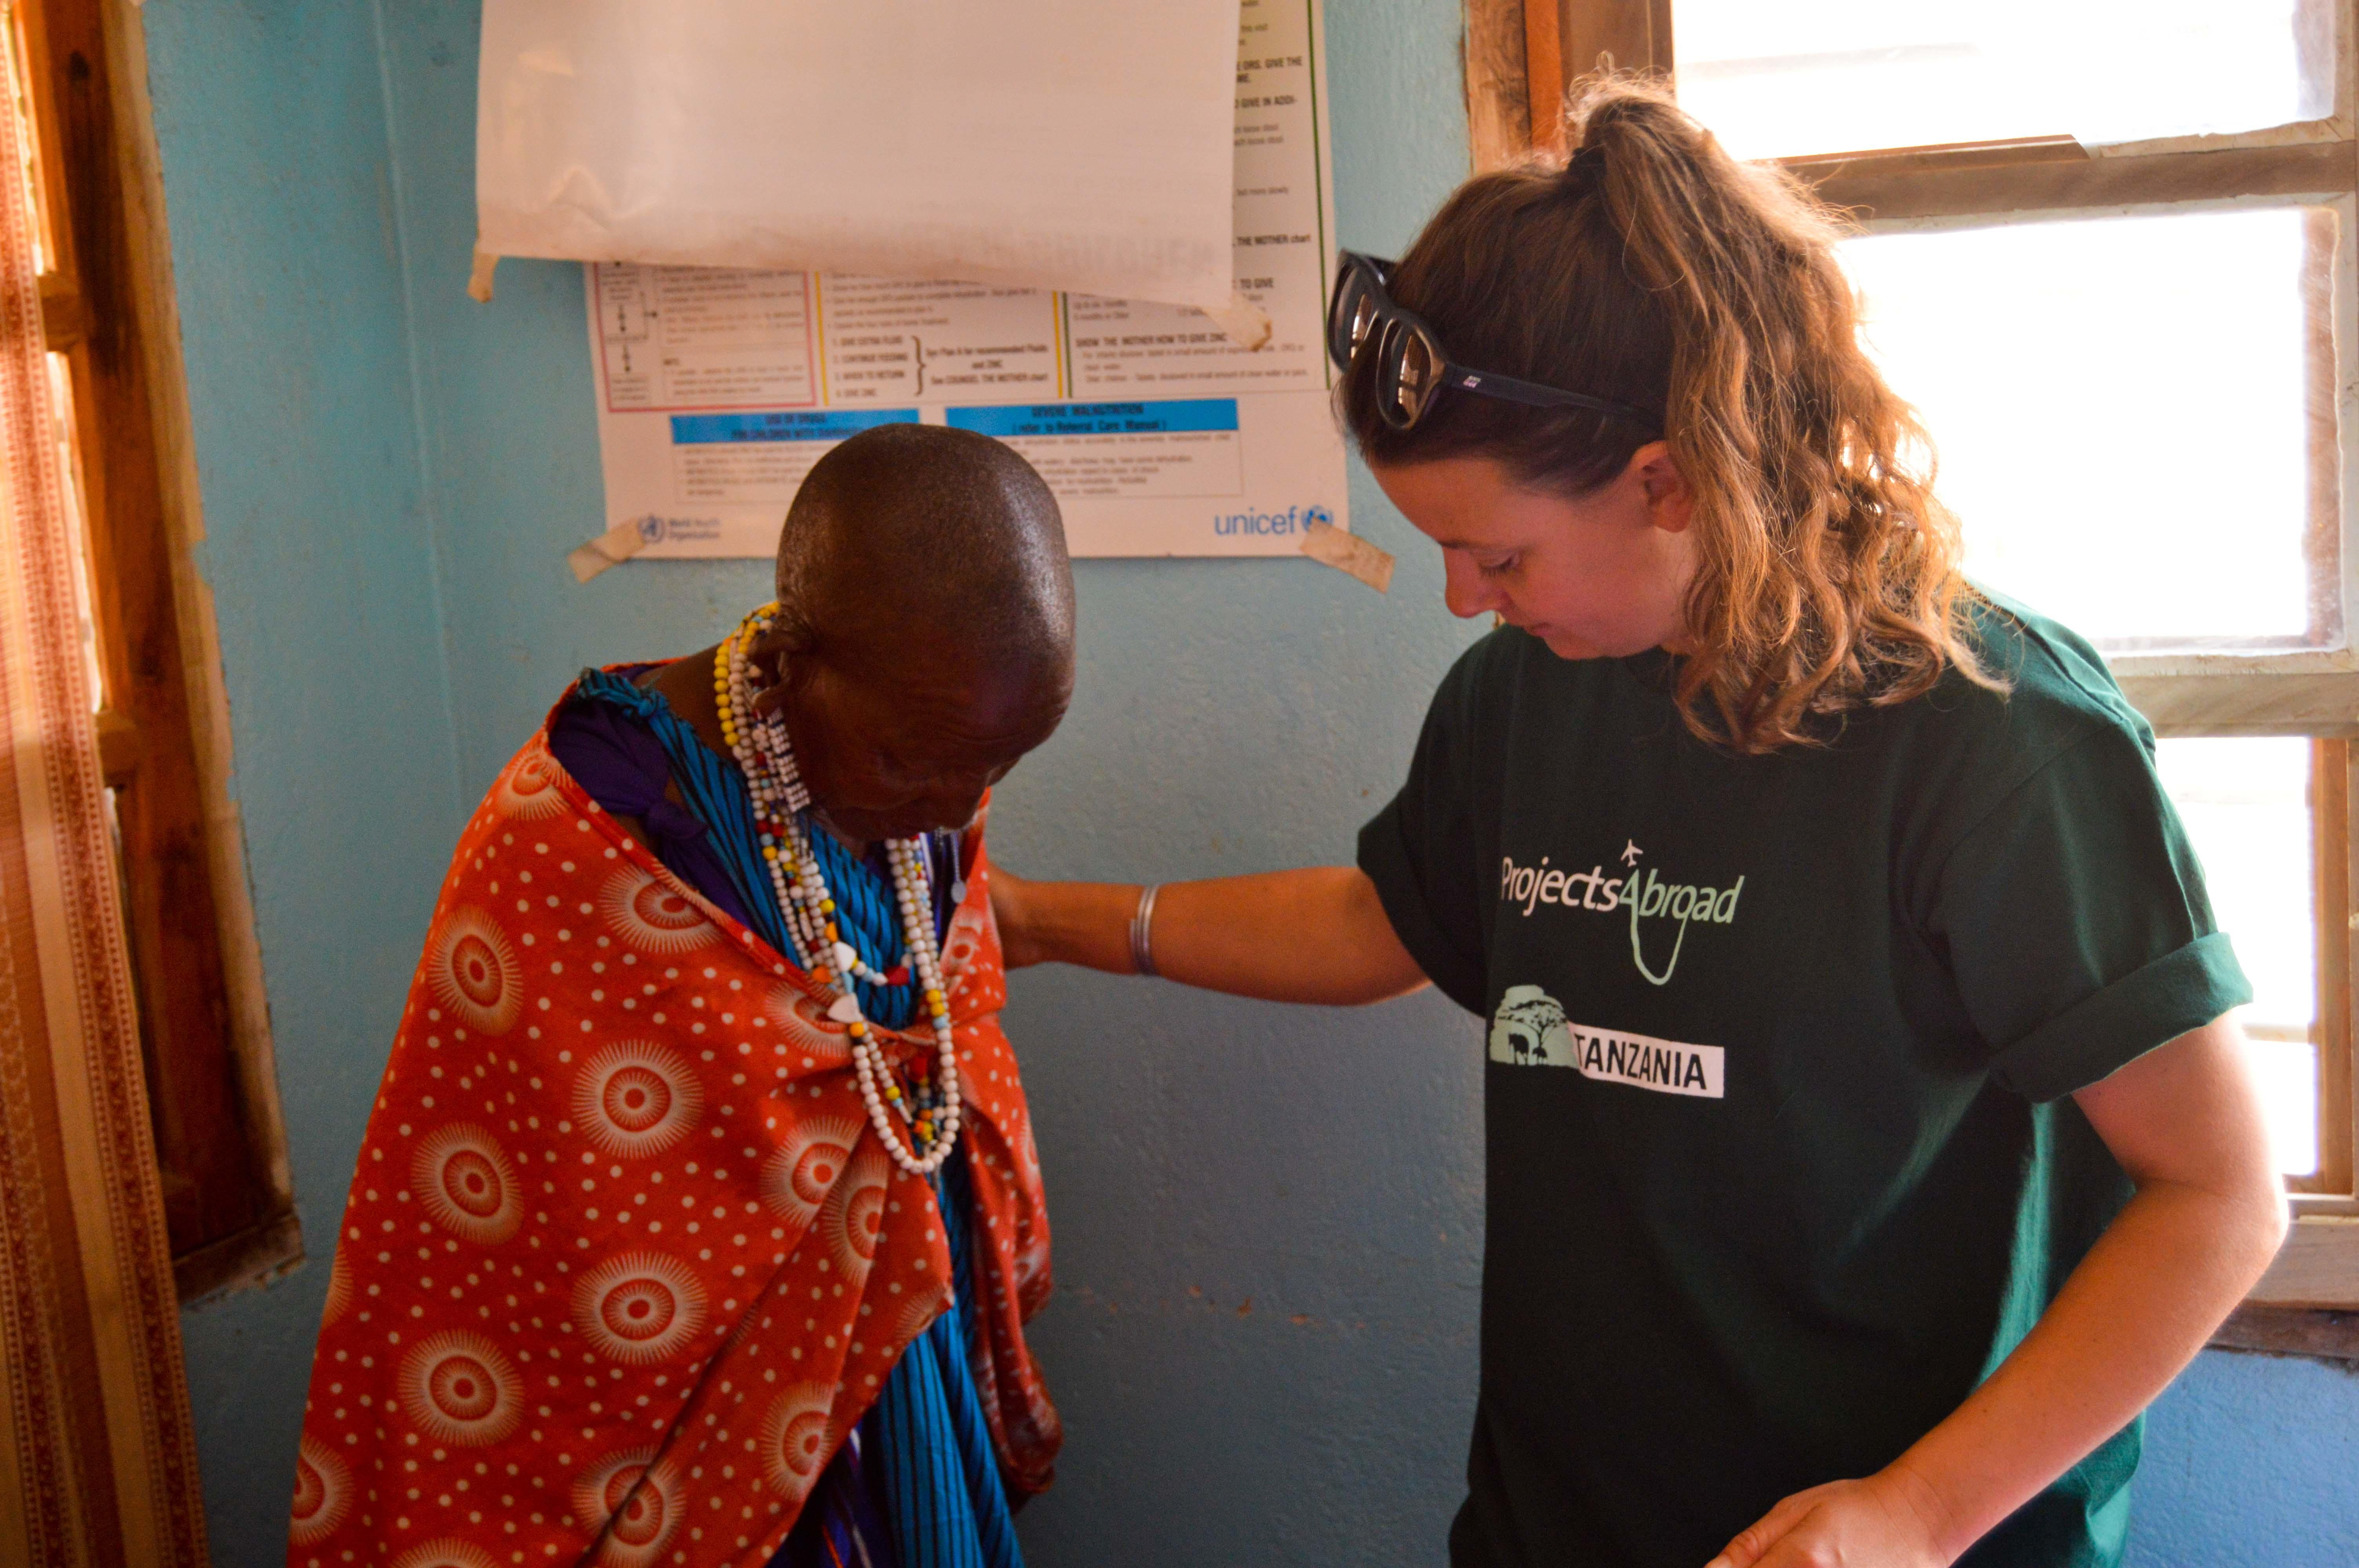 Female Projects Abroad intern is pictured assisting with weighing a Masai woman at the local clinic as part of her nursing internship in Tanzania.